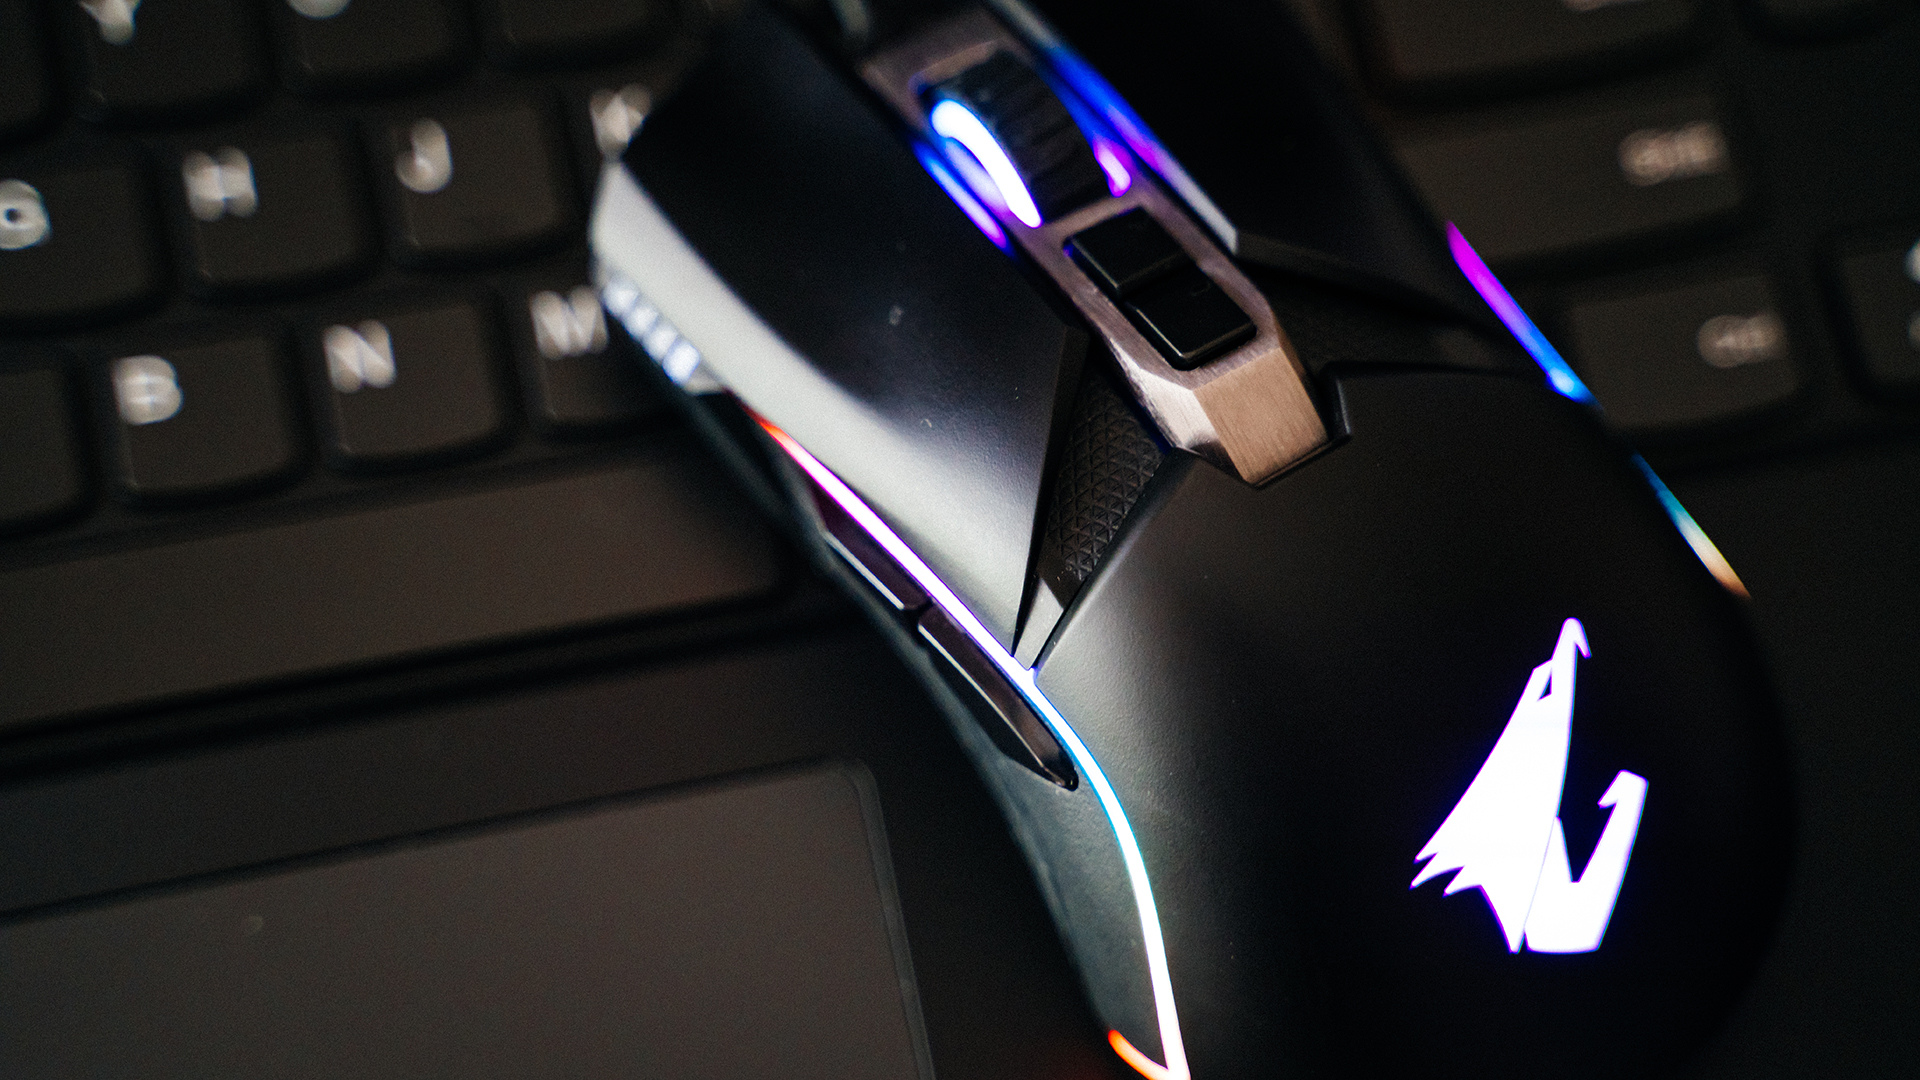 Best gaming mouse 2019: the best gaming mice we've tested